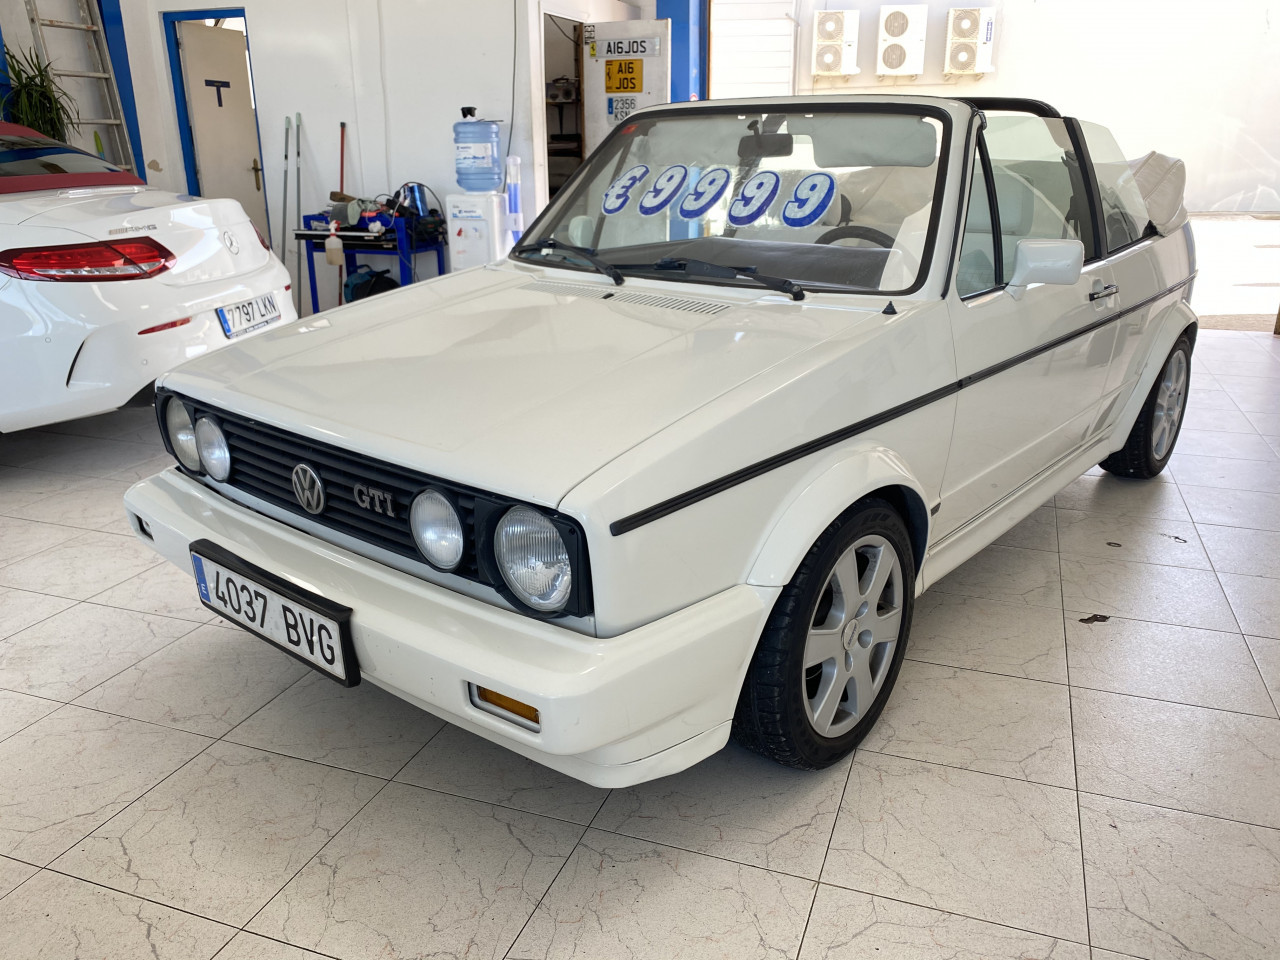 Volkswagen Cabriolet 1.8 Gti Photo